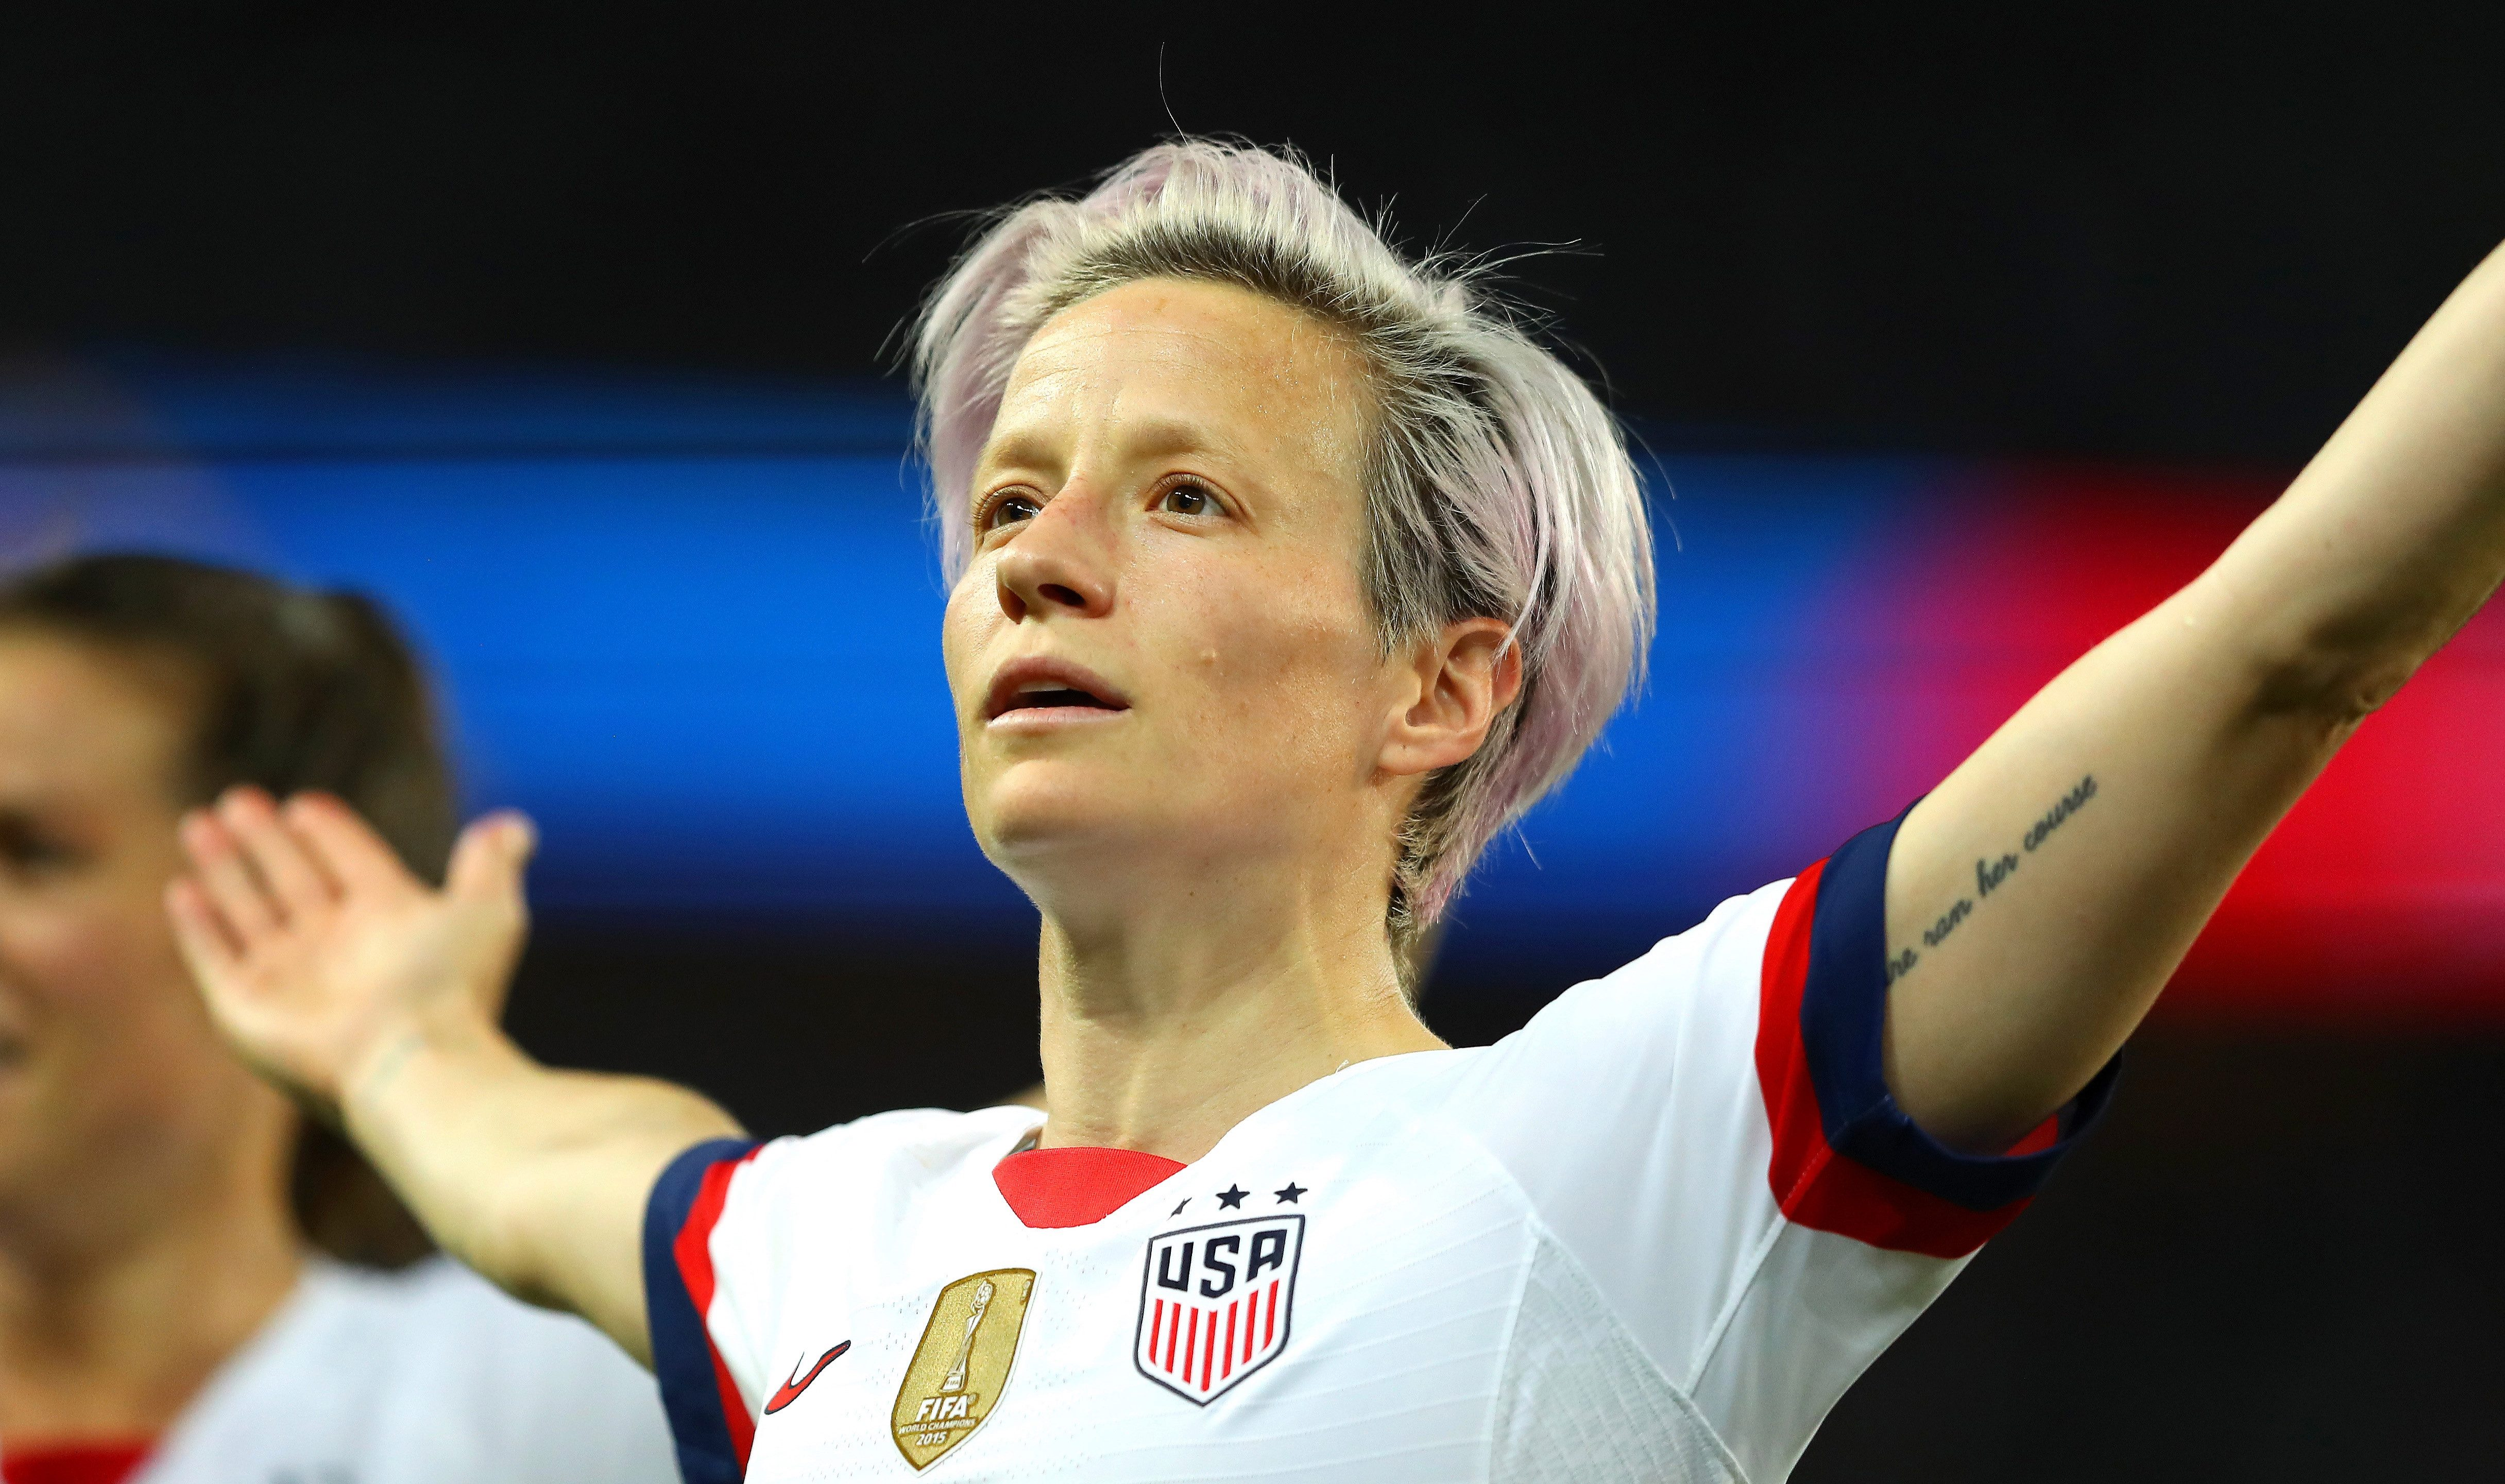 Megan Rapinoe scored both of goals for the USA in their quarter-final victory